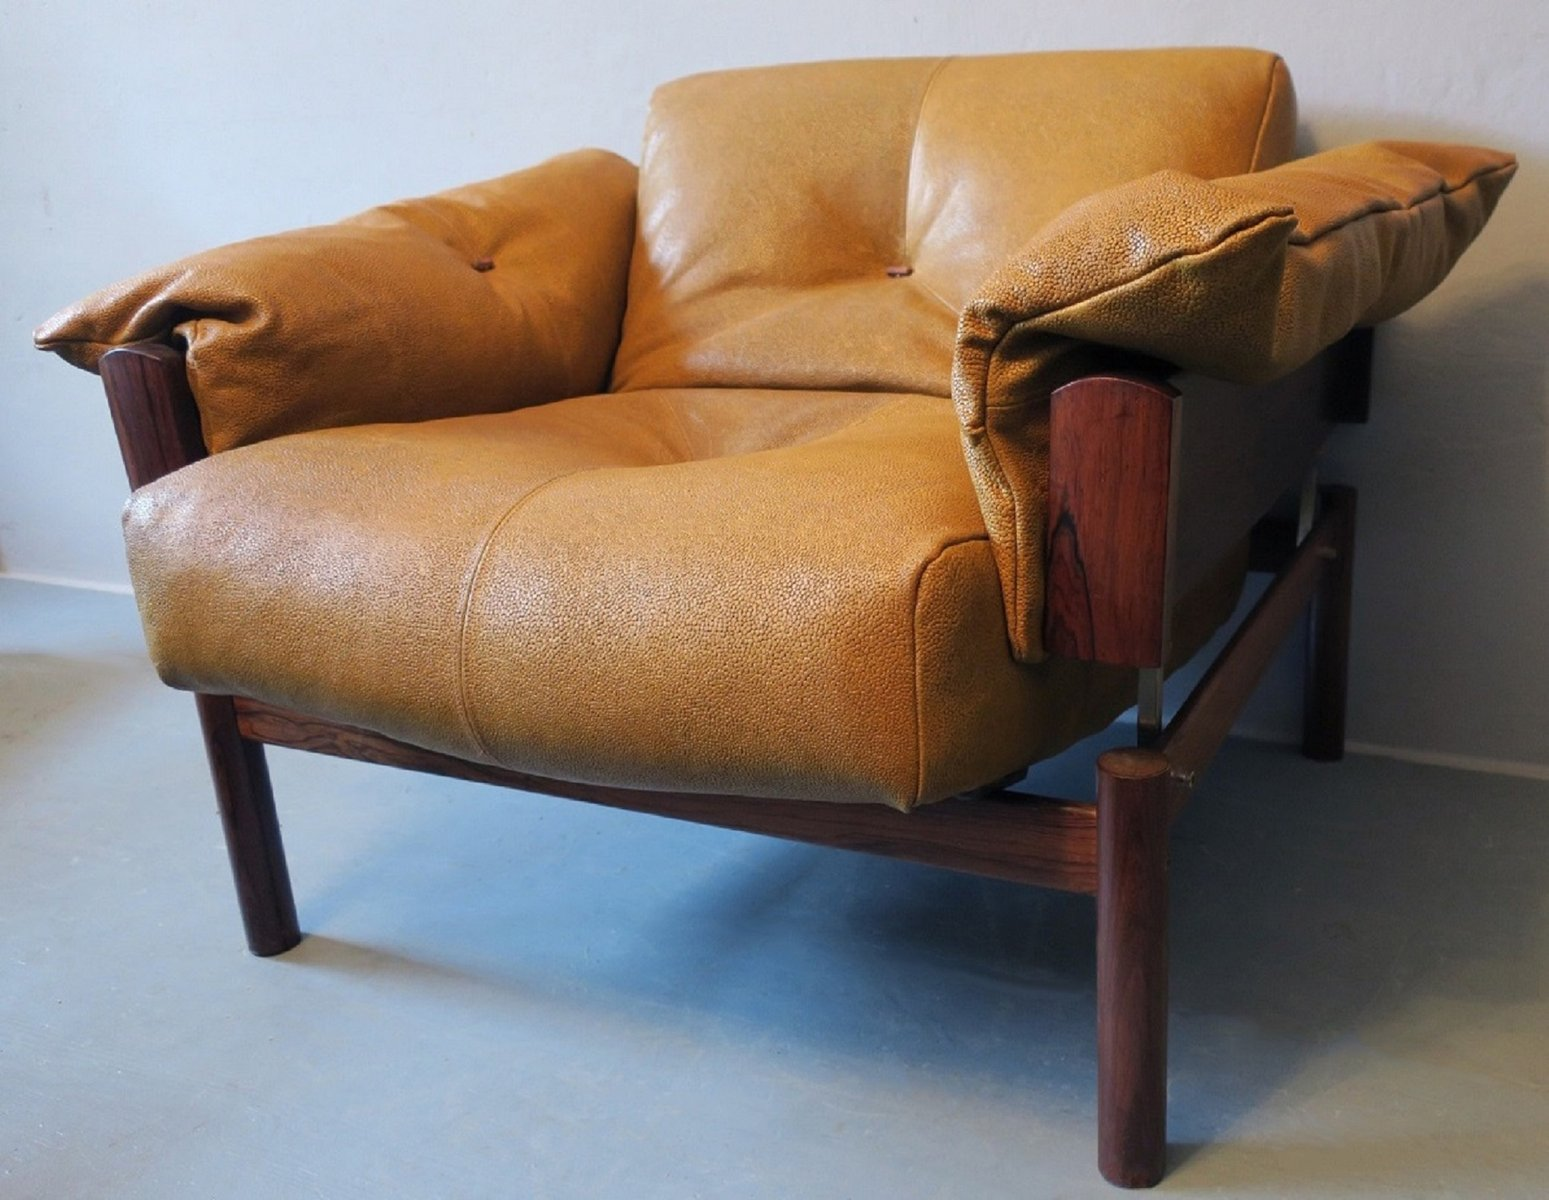 Bon Model MP 13 Brazilian Rosewood U0026 Leather Lounge Chair By Percival Lafer,  1960s